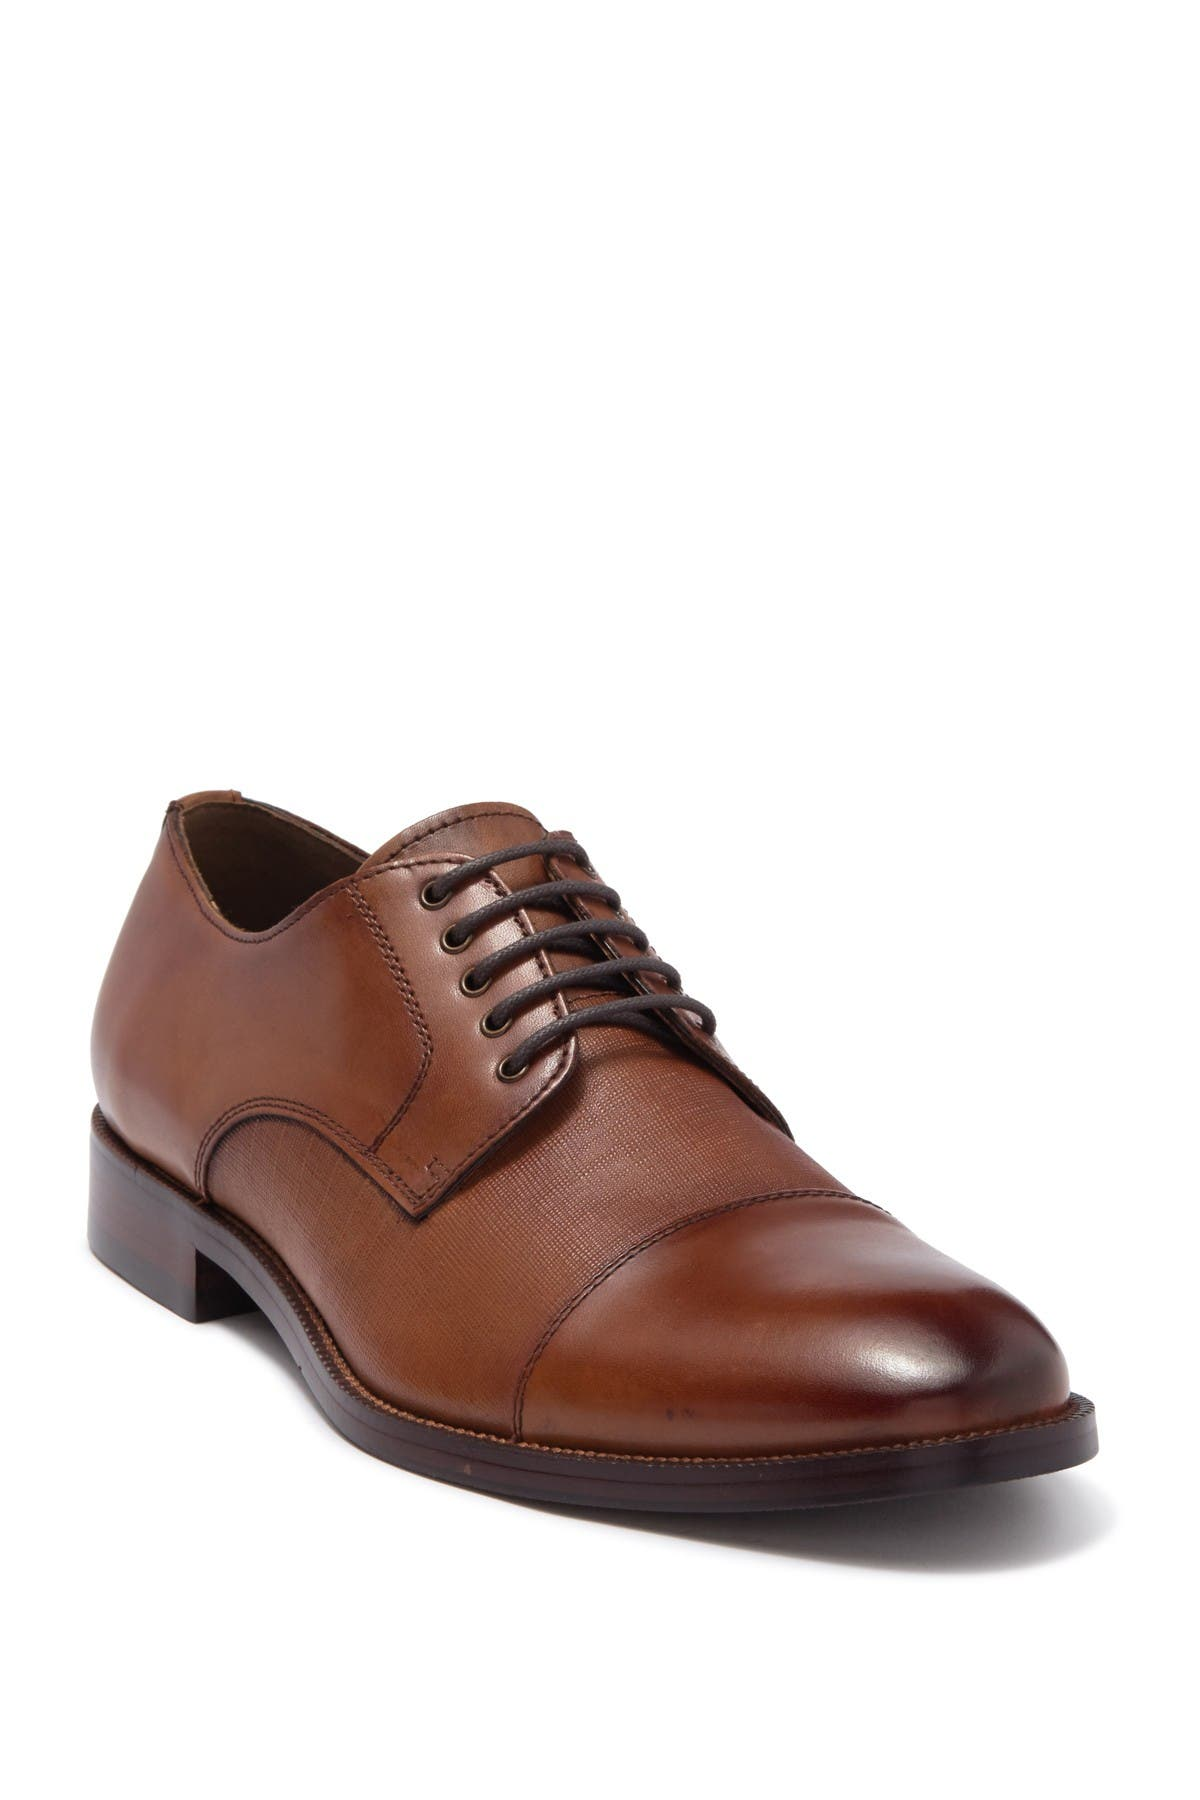 Image of Winthrop Cap Toe Derby